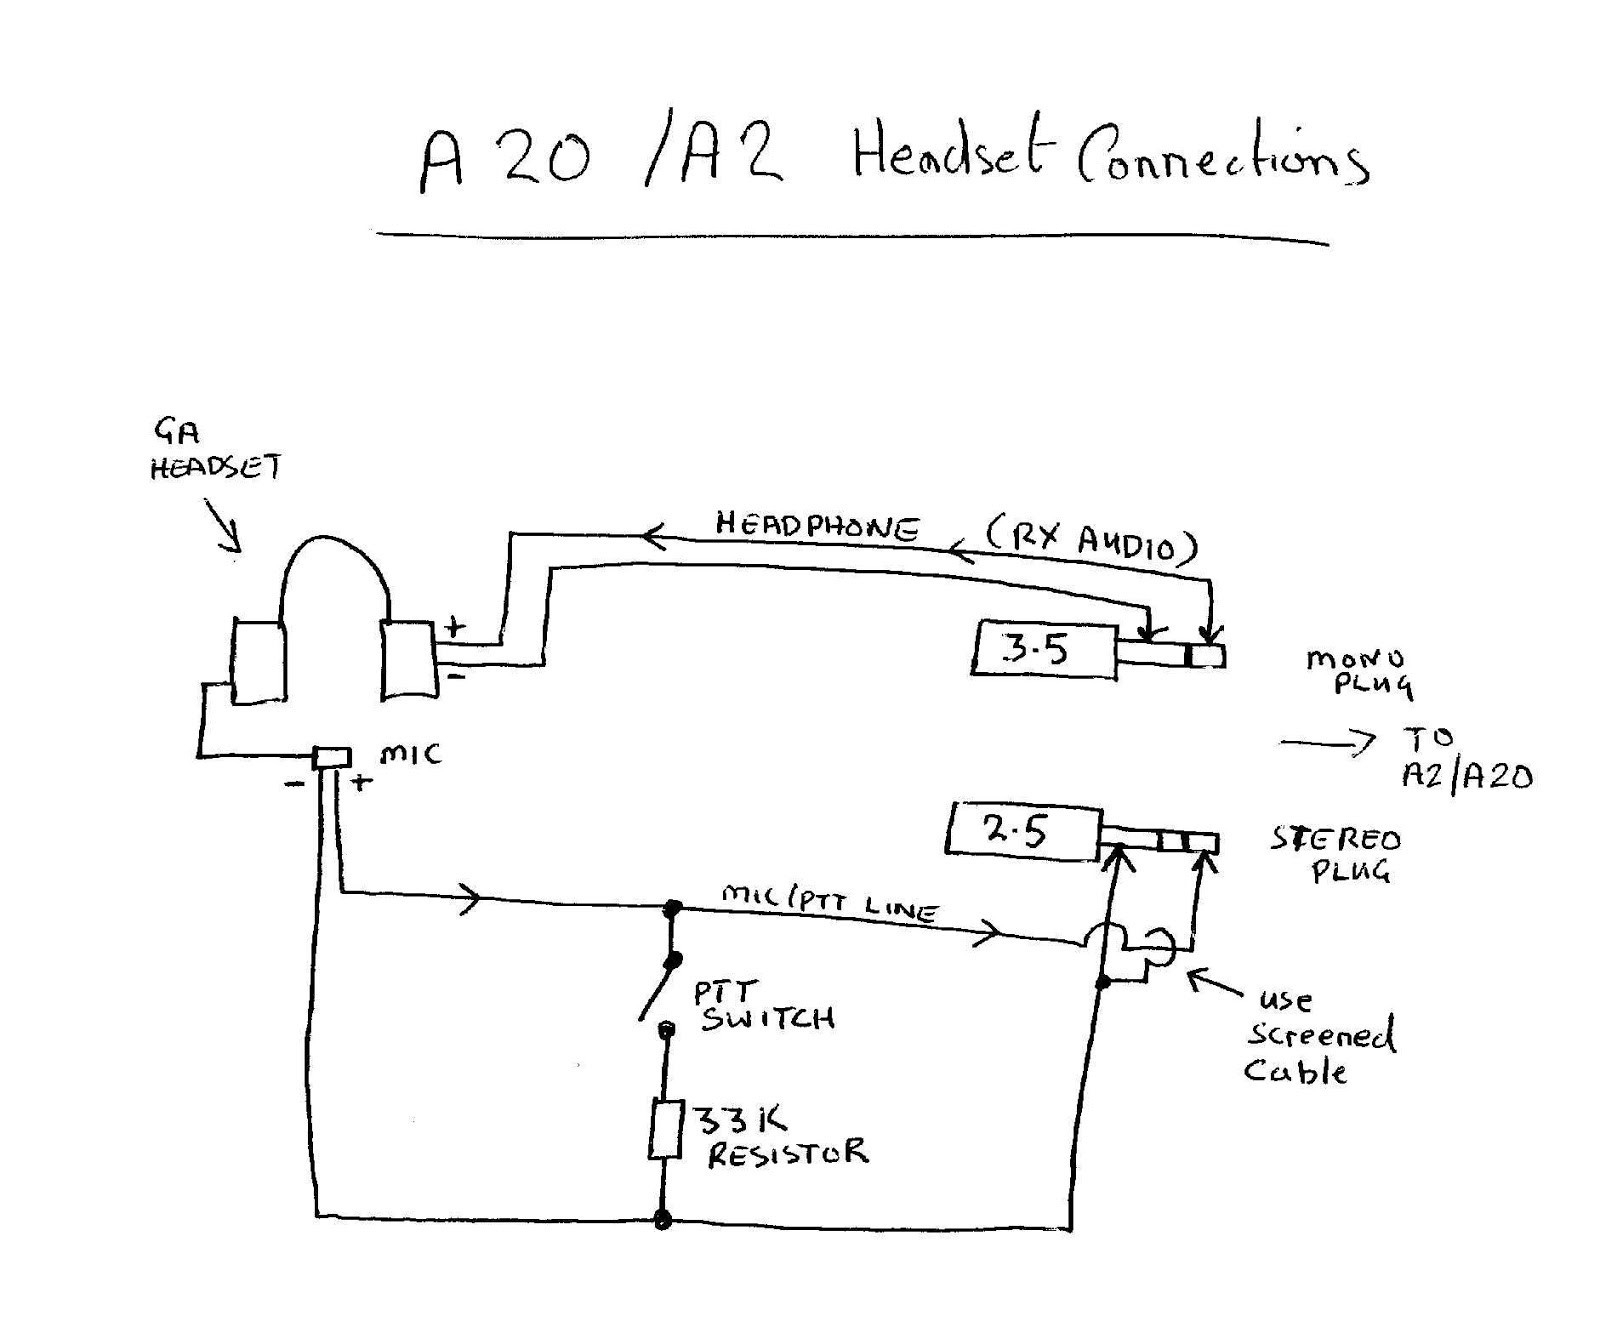 hight resolution of bose a20 wiring diagram kenwood microphone wiring diagram new luxury headphone with mic headphone circuit